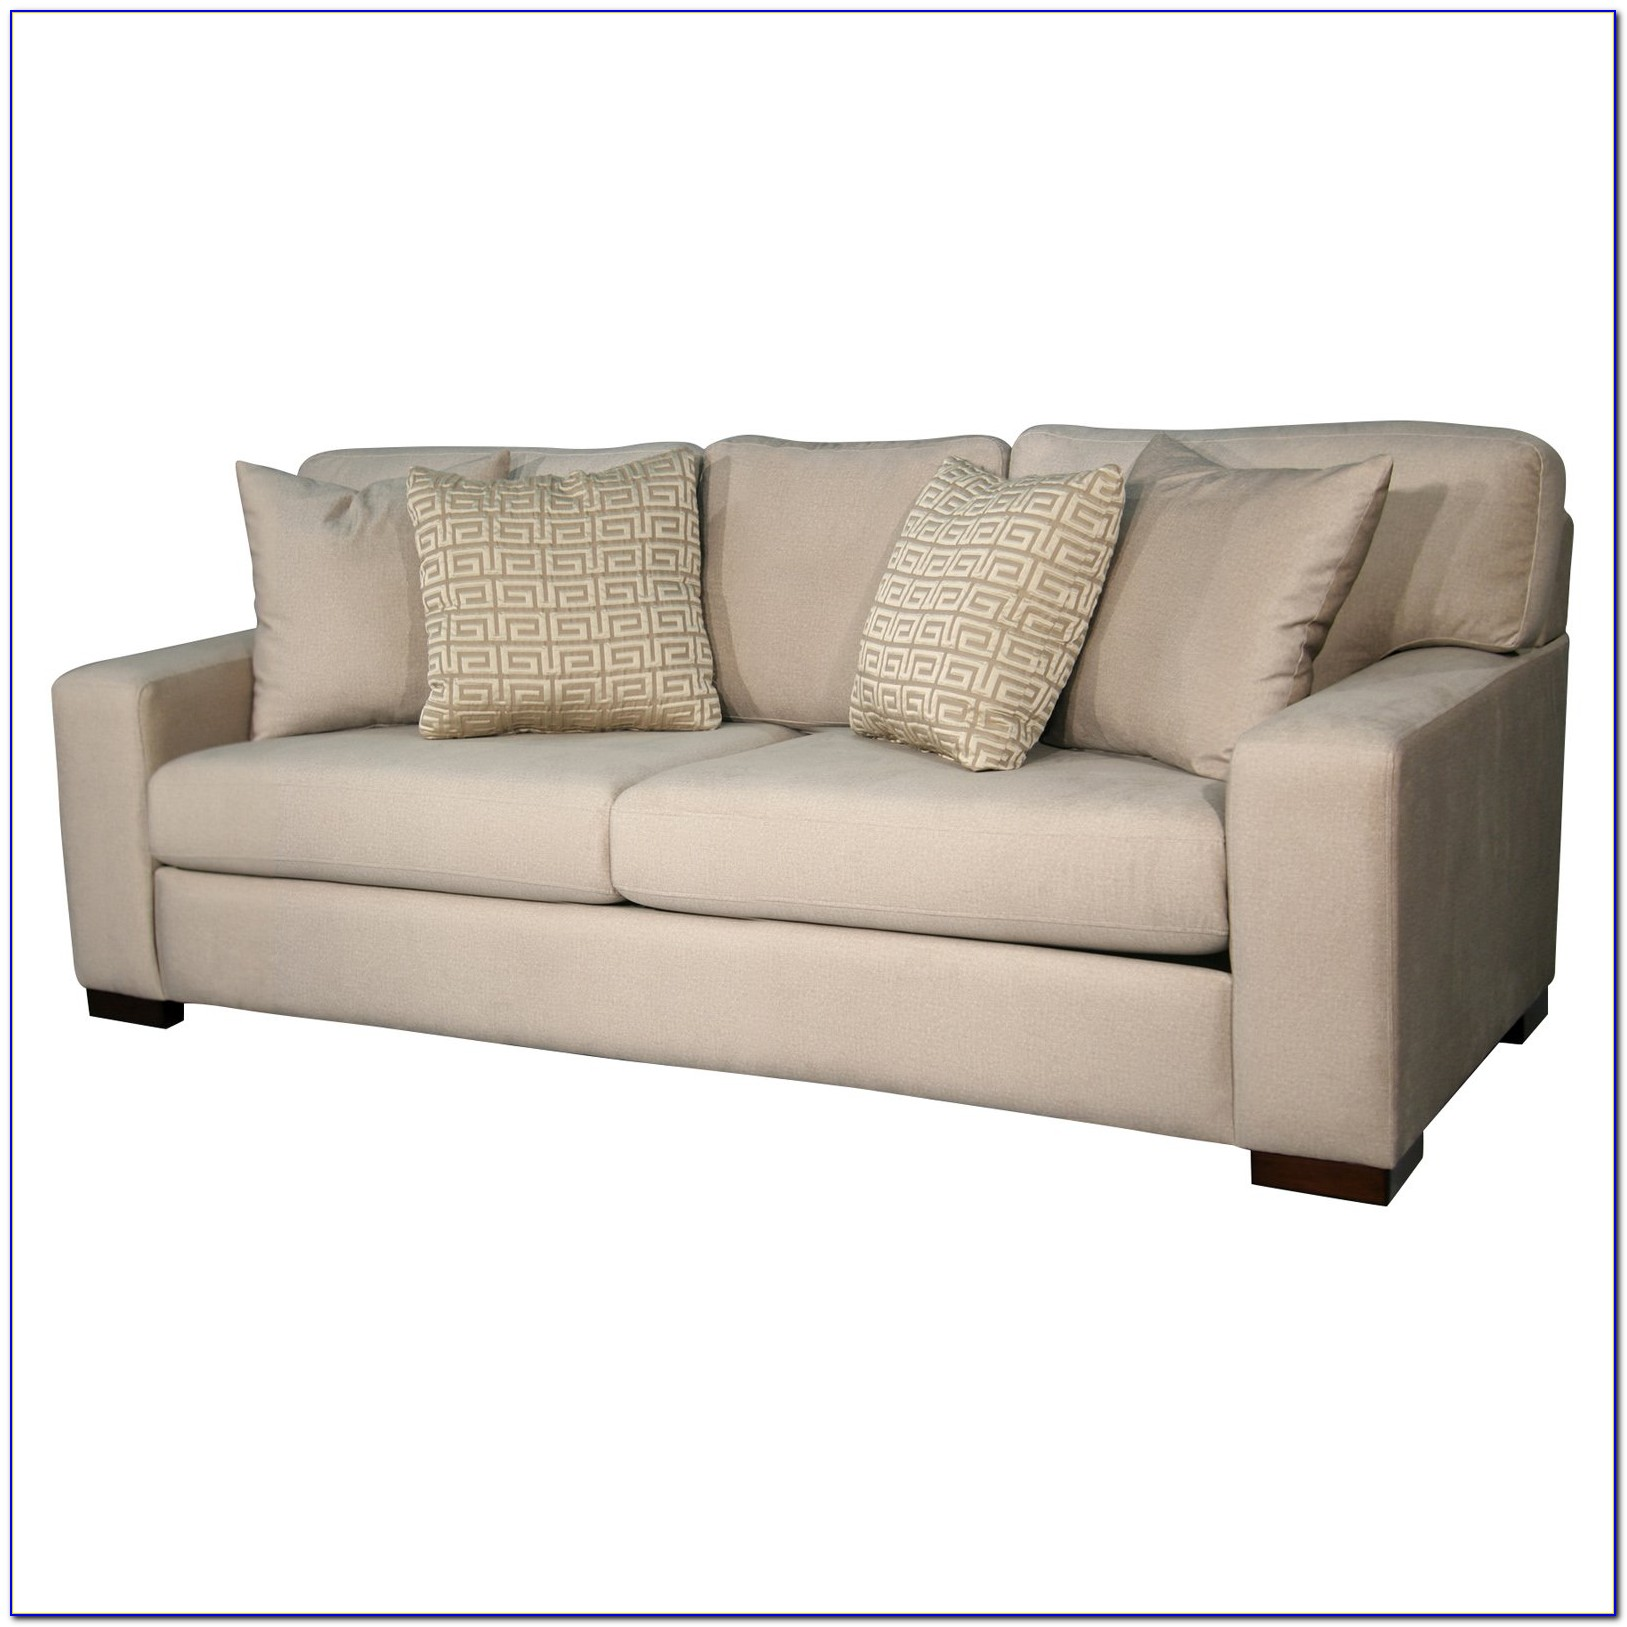 Small Apartment Size Sectional Sofas